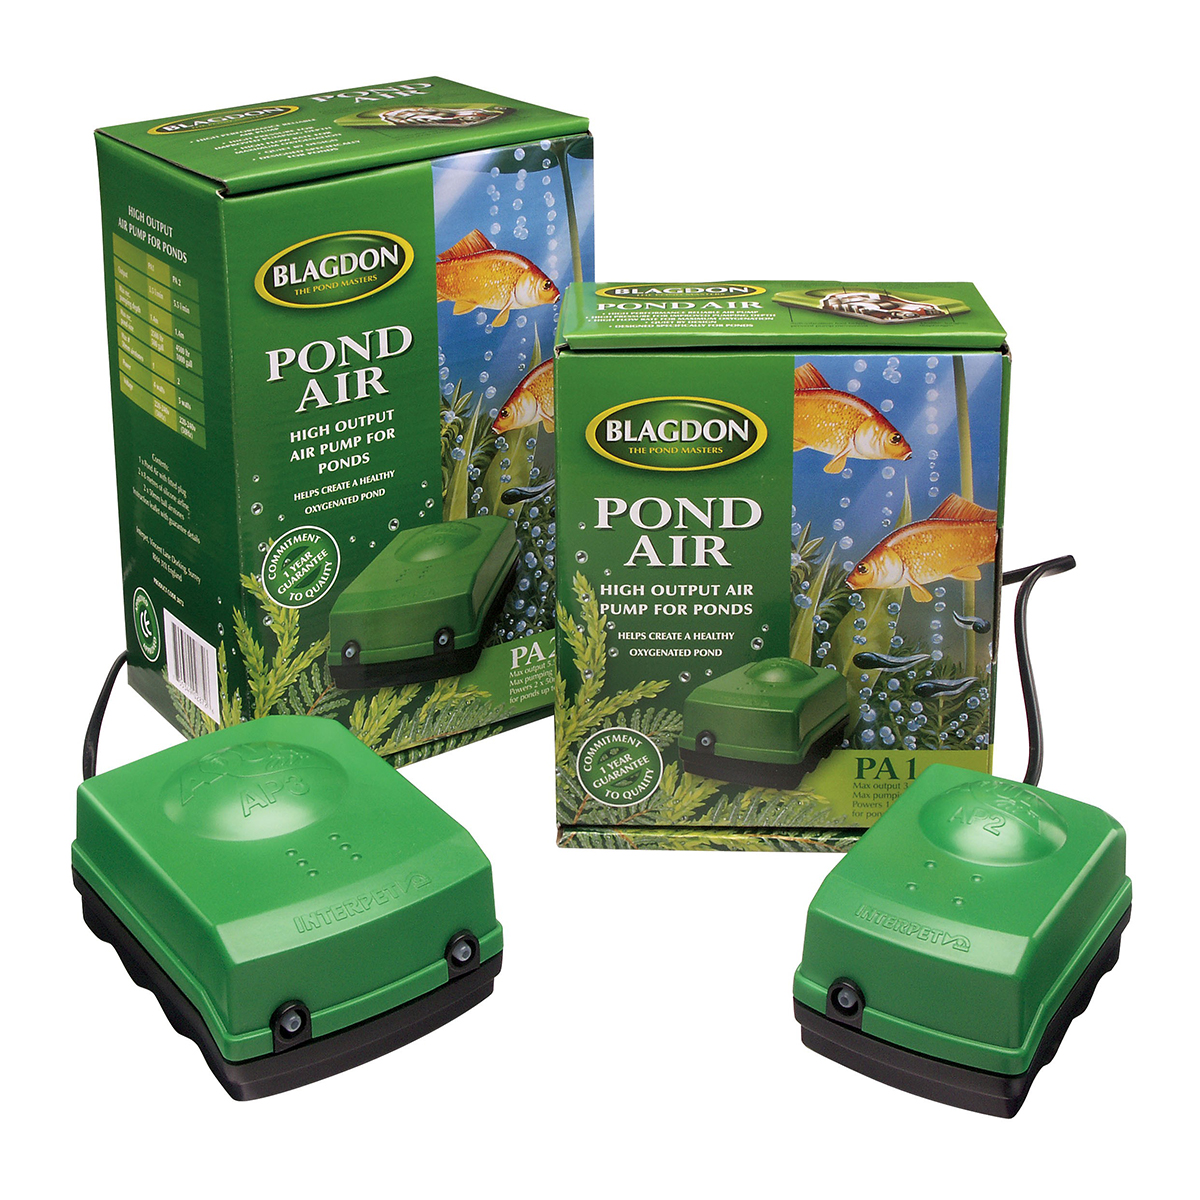 Blagdon pond air pump systems for Fish pond kits